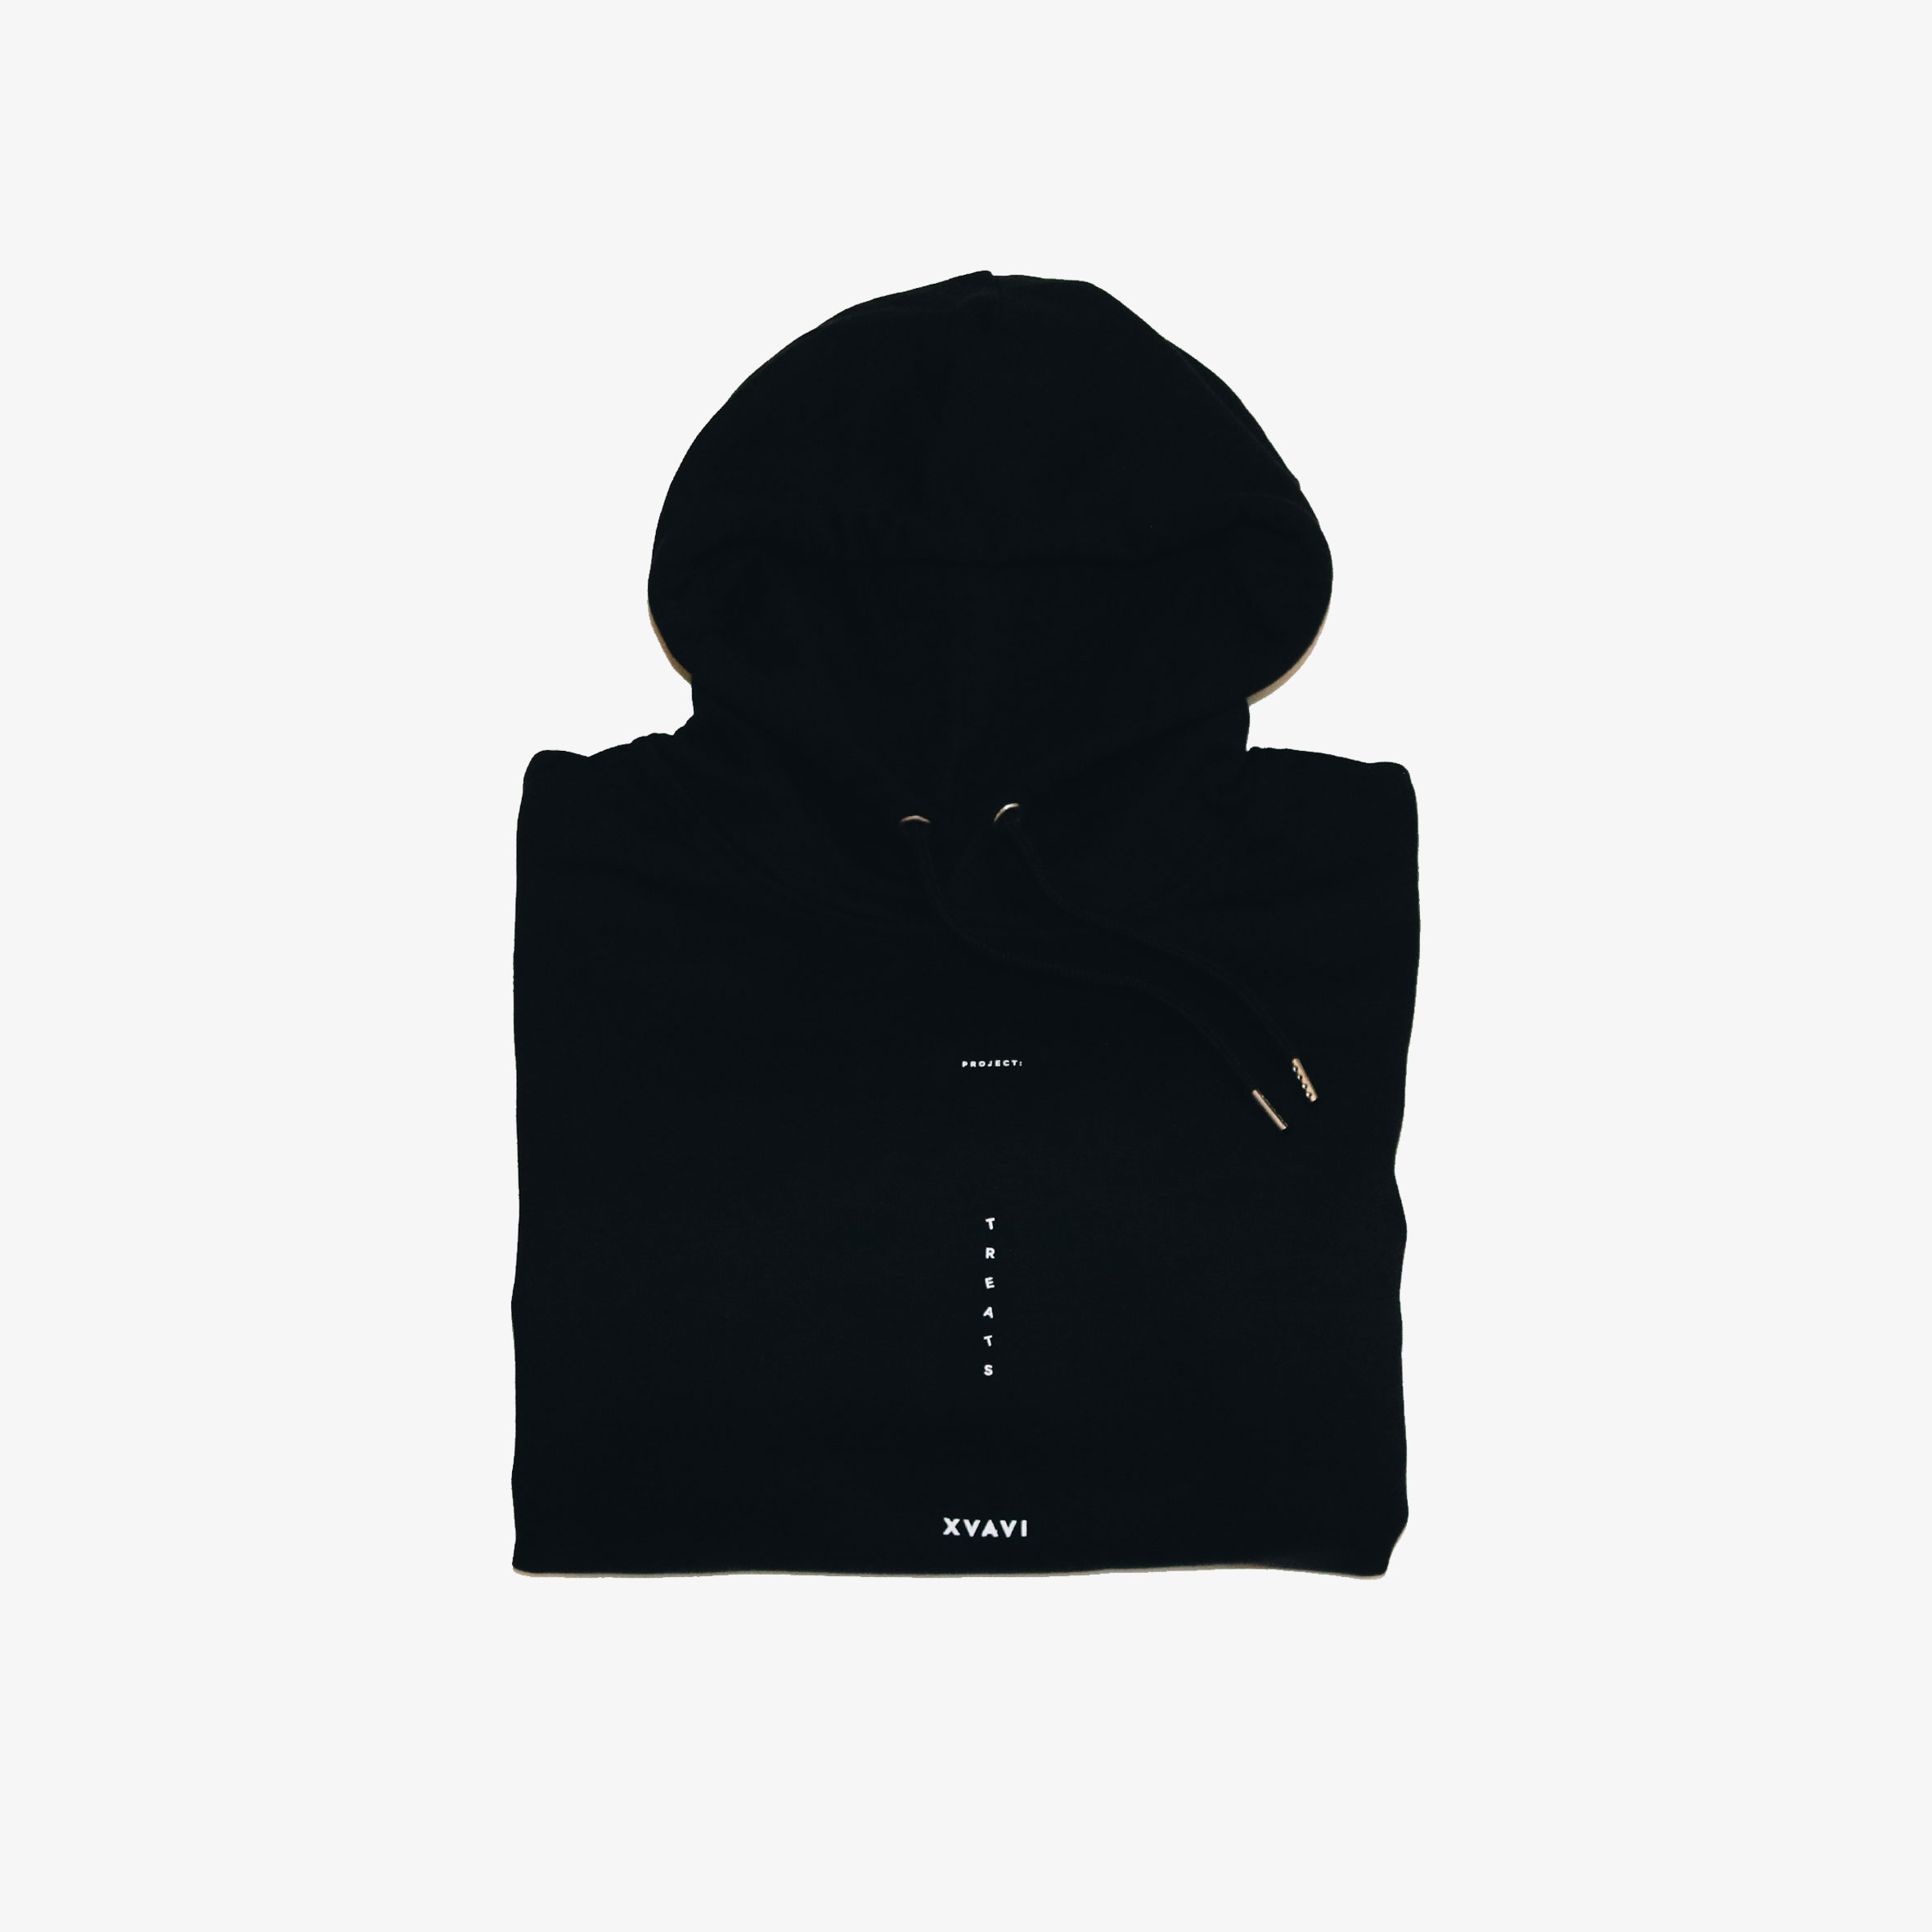 Project: Treats Black Hoodie by Xvavi®